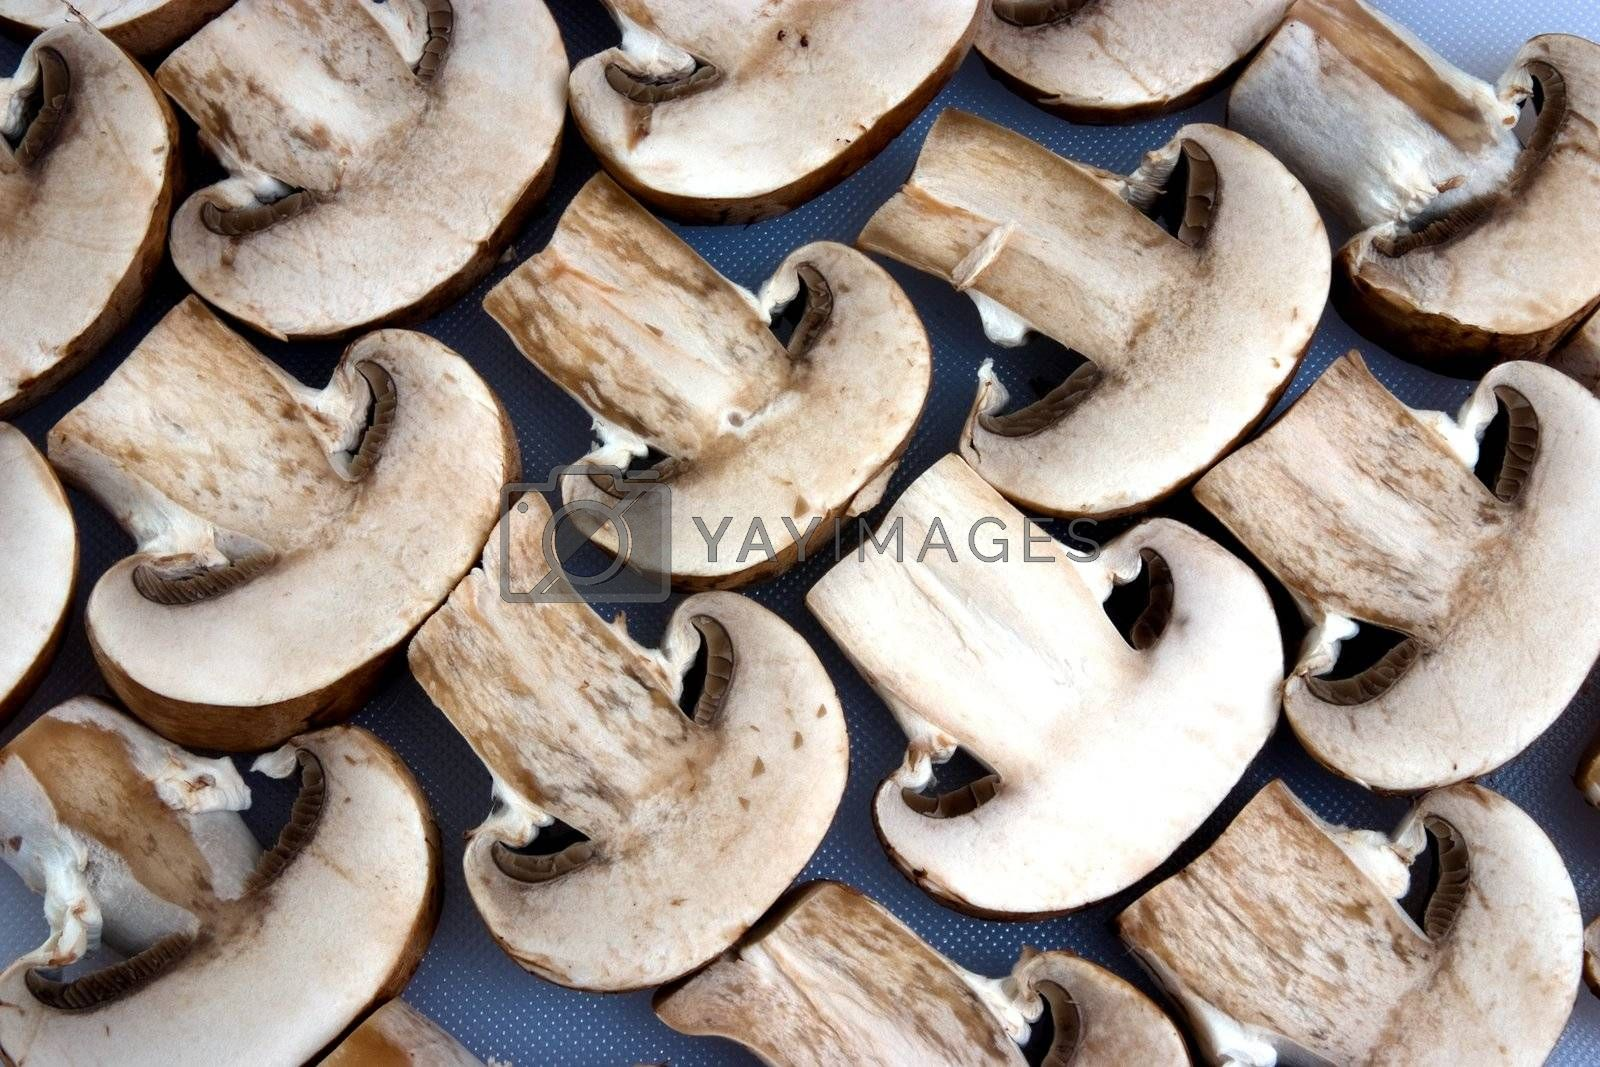 A group of sliced mushrooms laid out on a chopping board